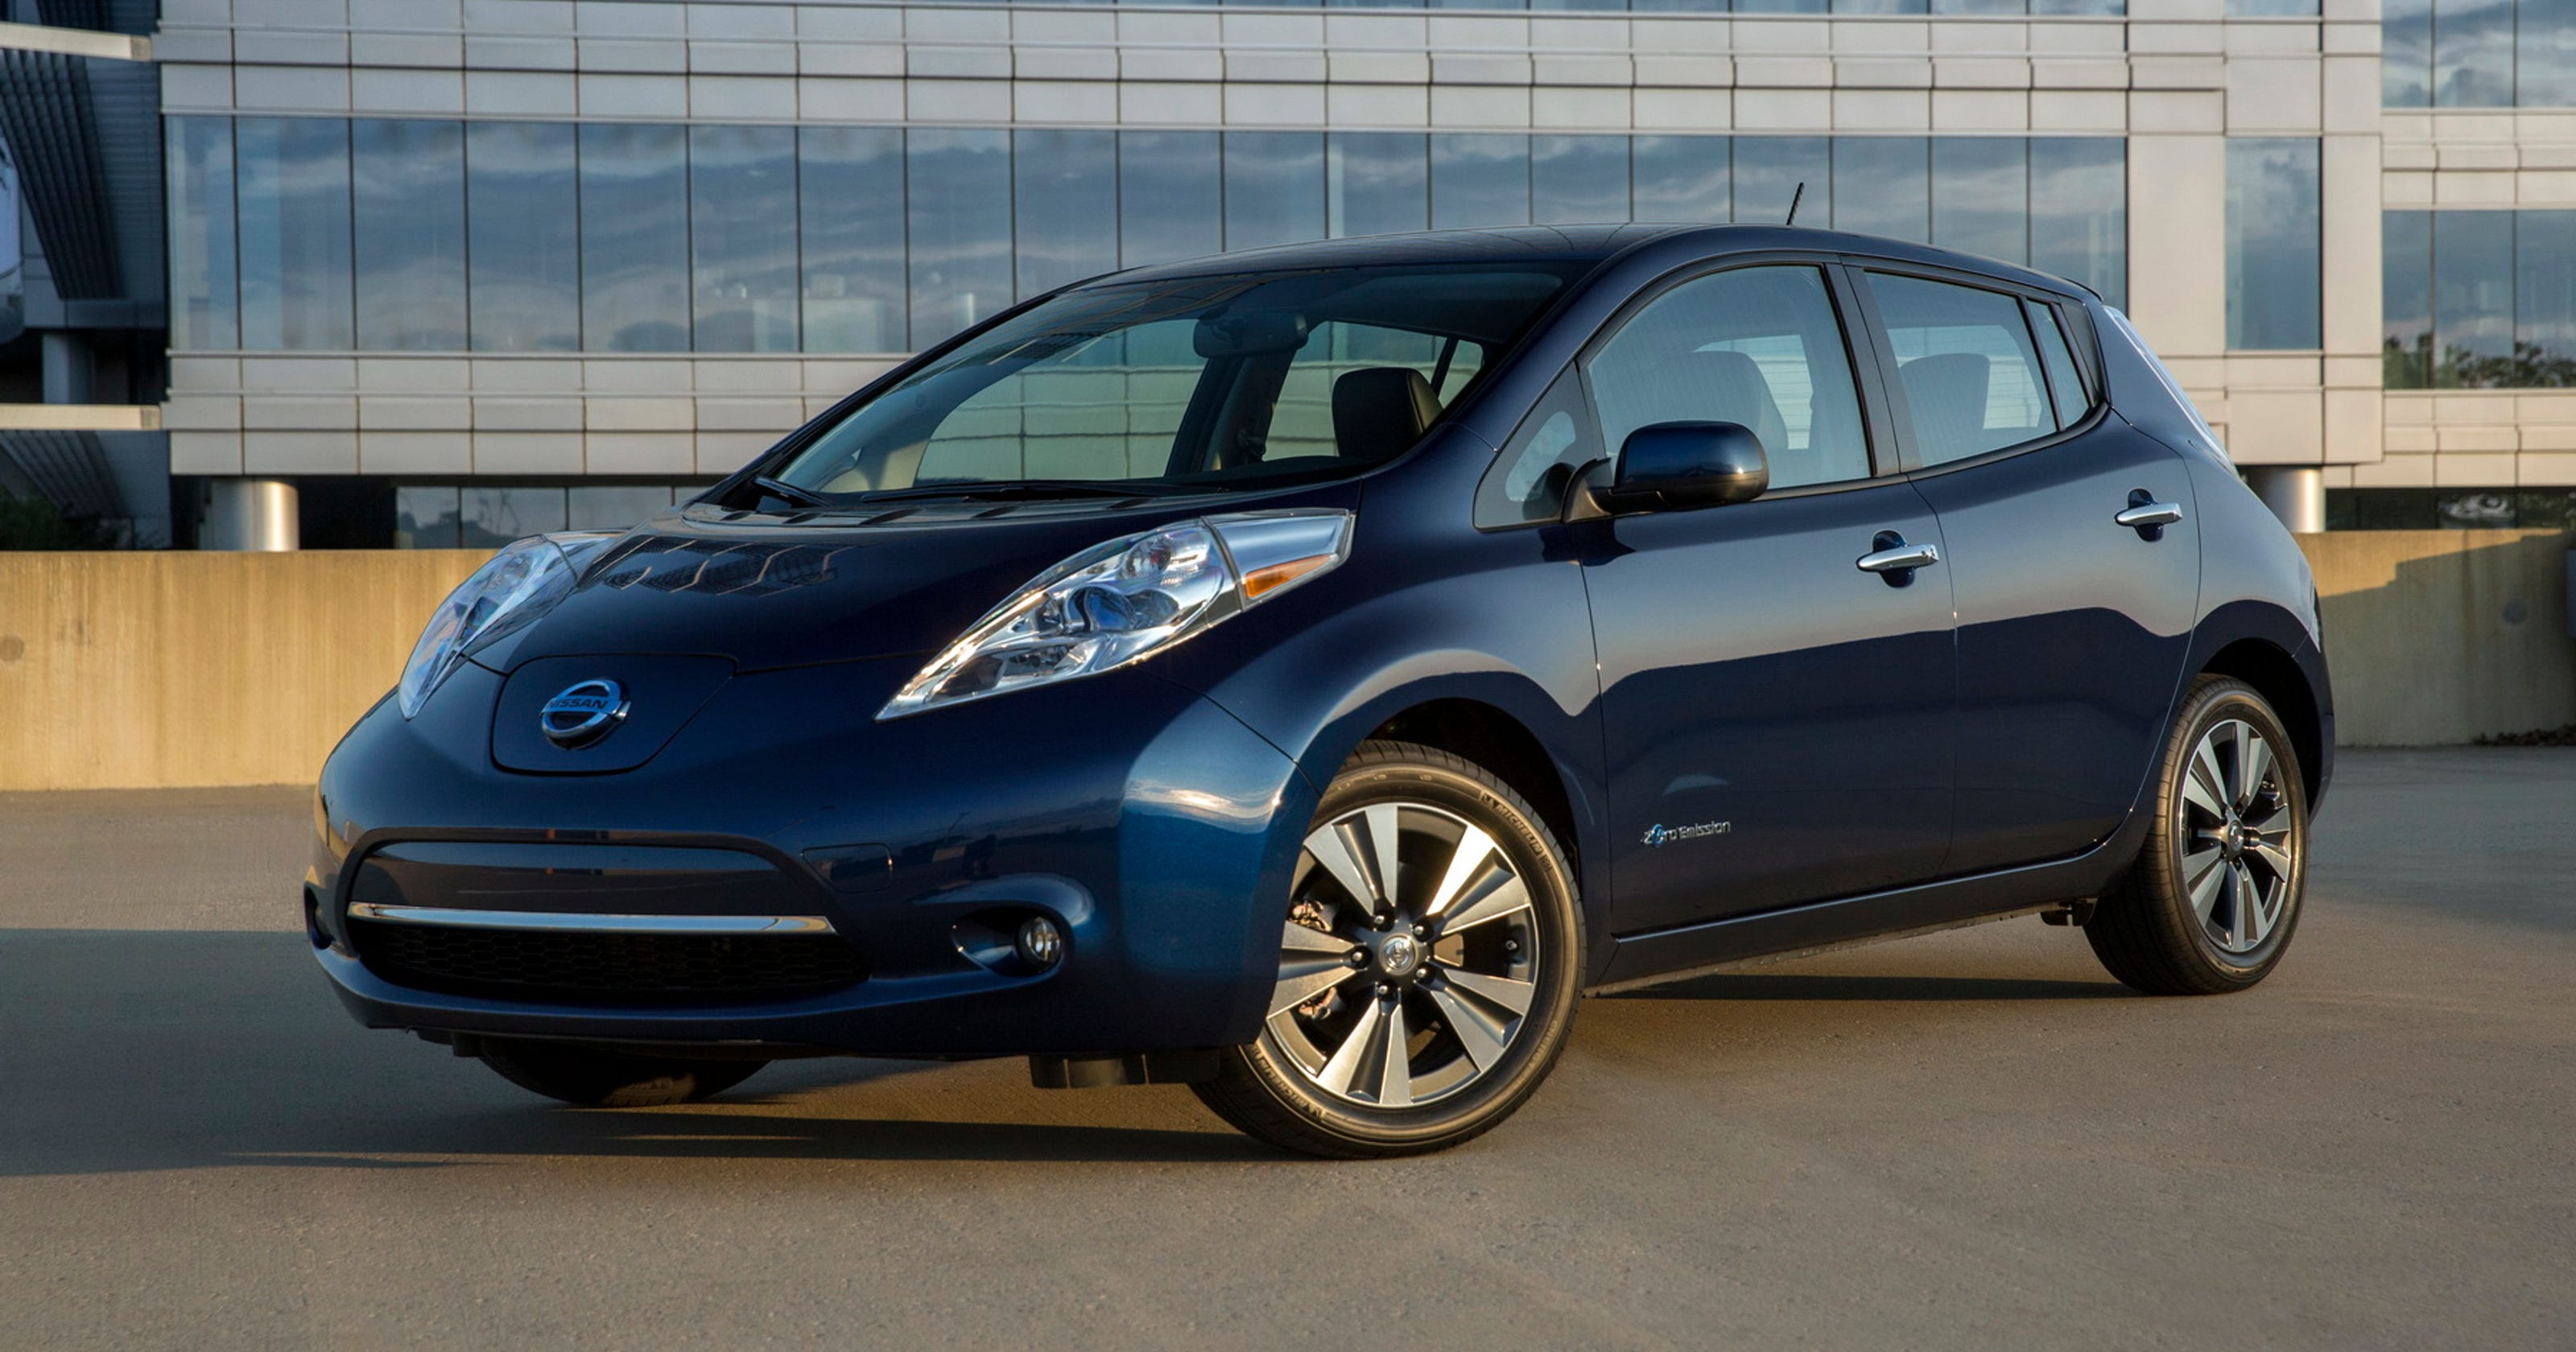 2017 Nissan Leaf Electric Environmentally Friendly Everyday Vehicle